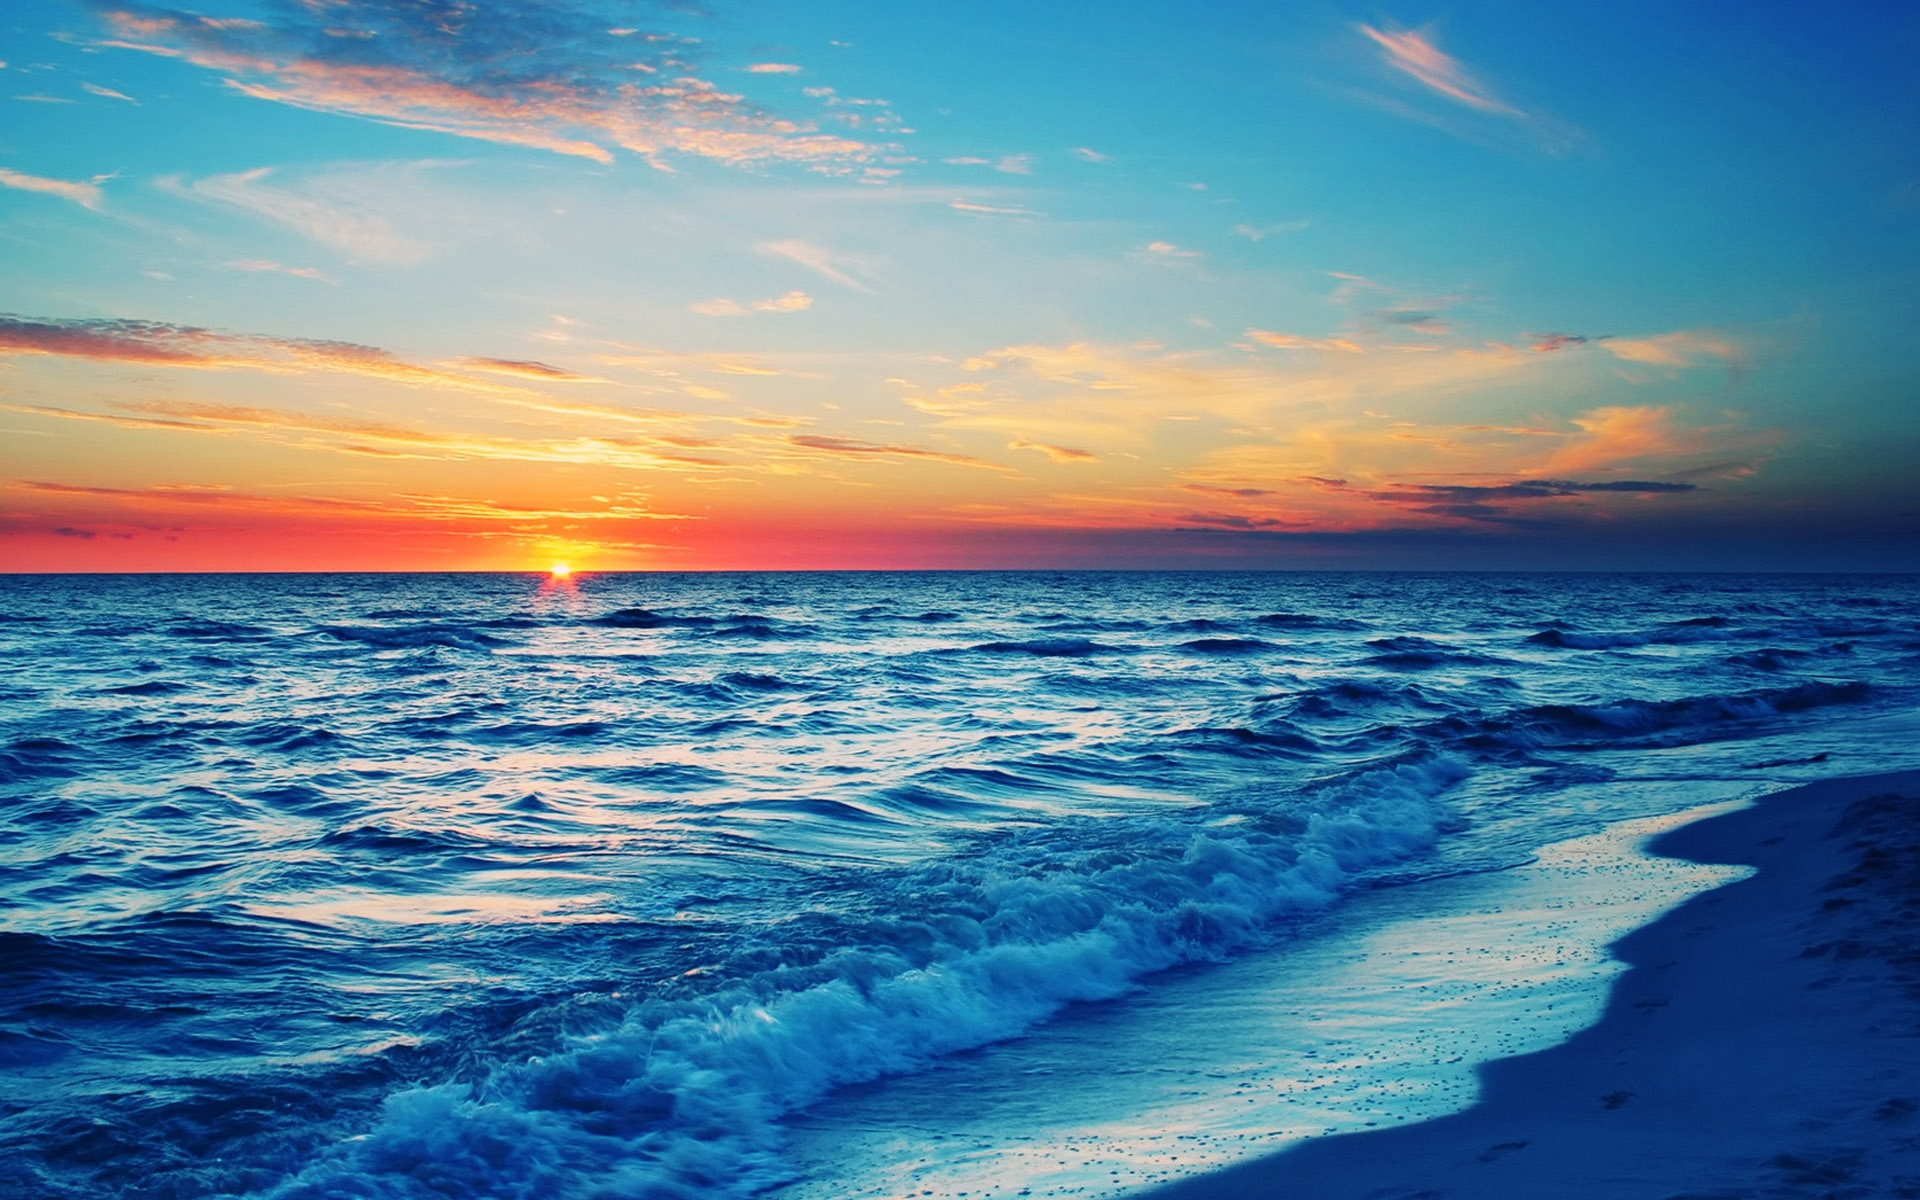 beach wallpaper 13044 1920x1200 px ~ hdwallsource